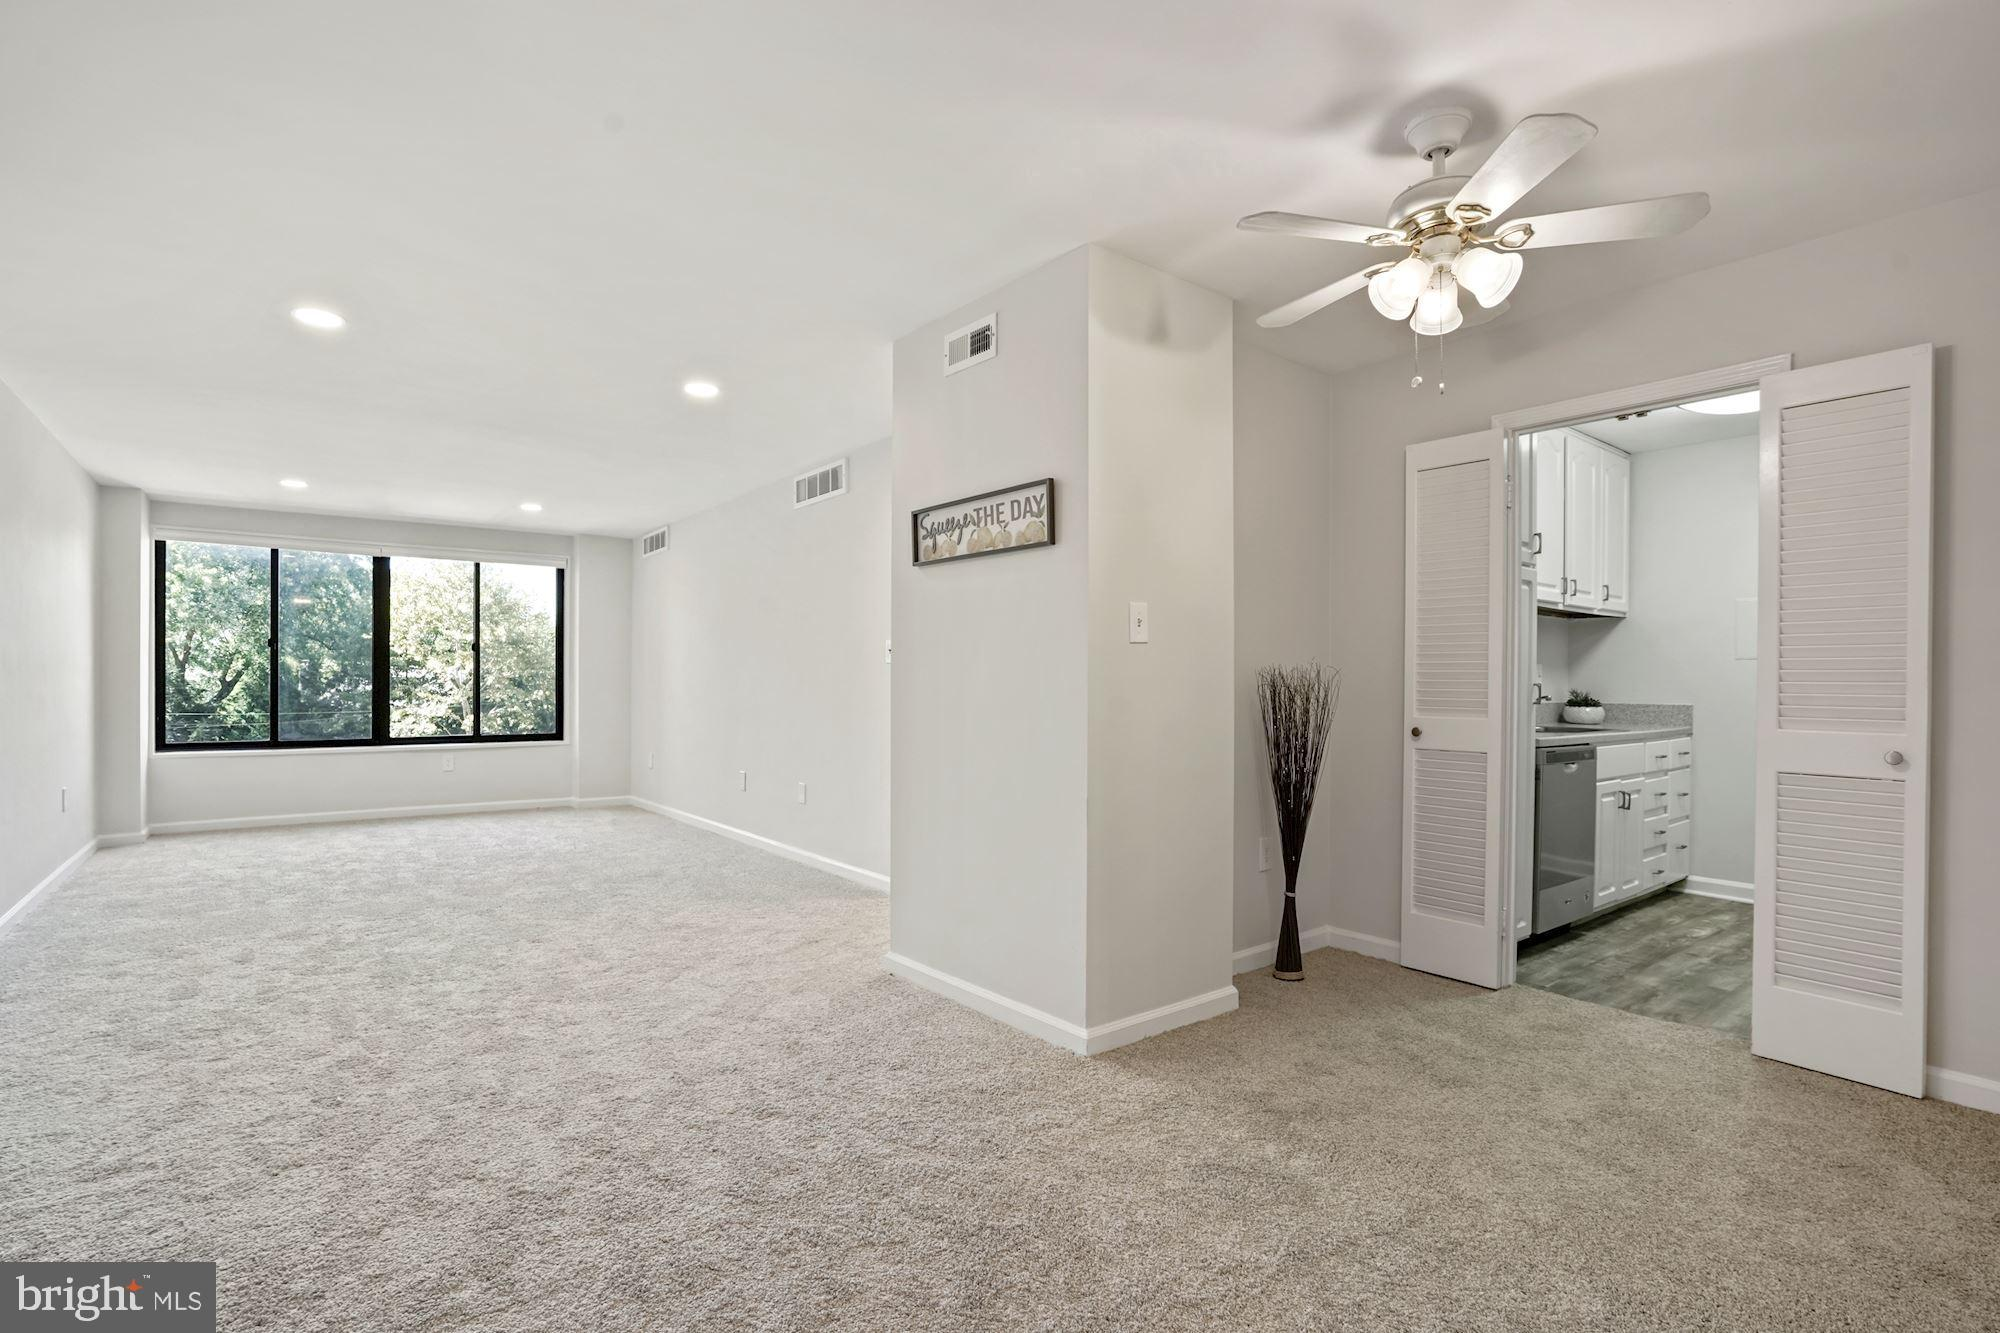 A spacious and cheerful fully updated 1 bedroom 1 bath unit across the street from the National Cath